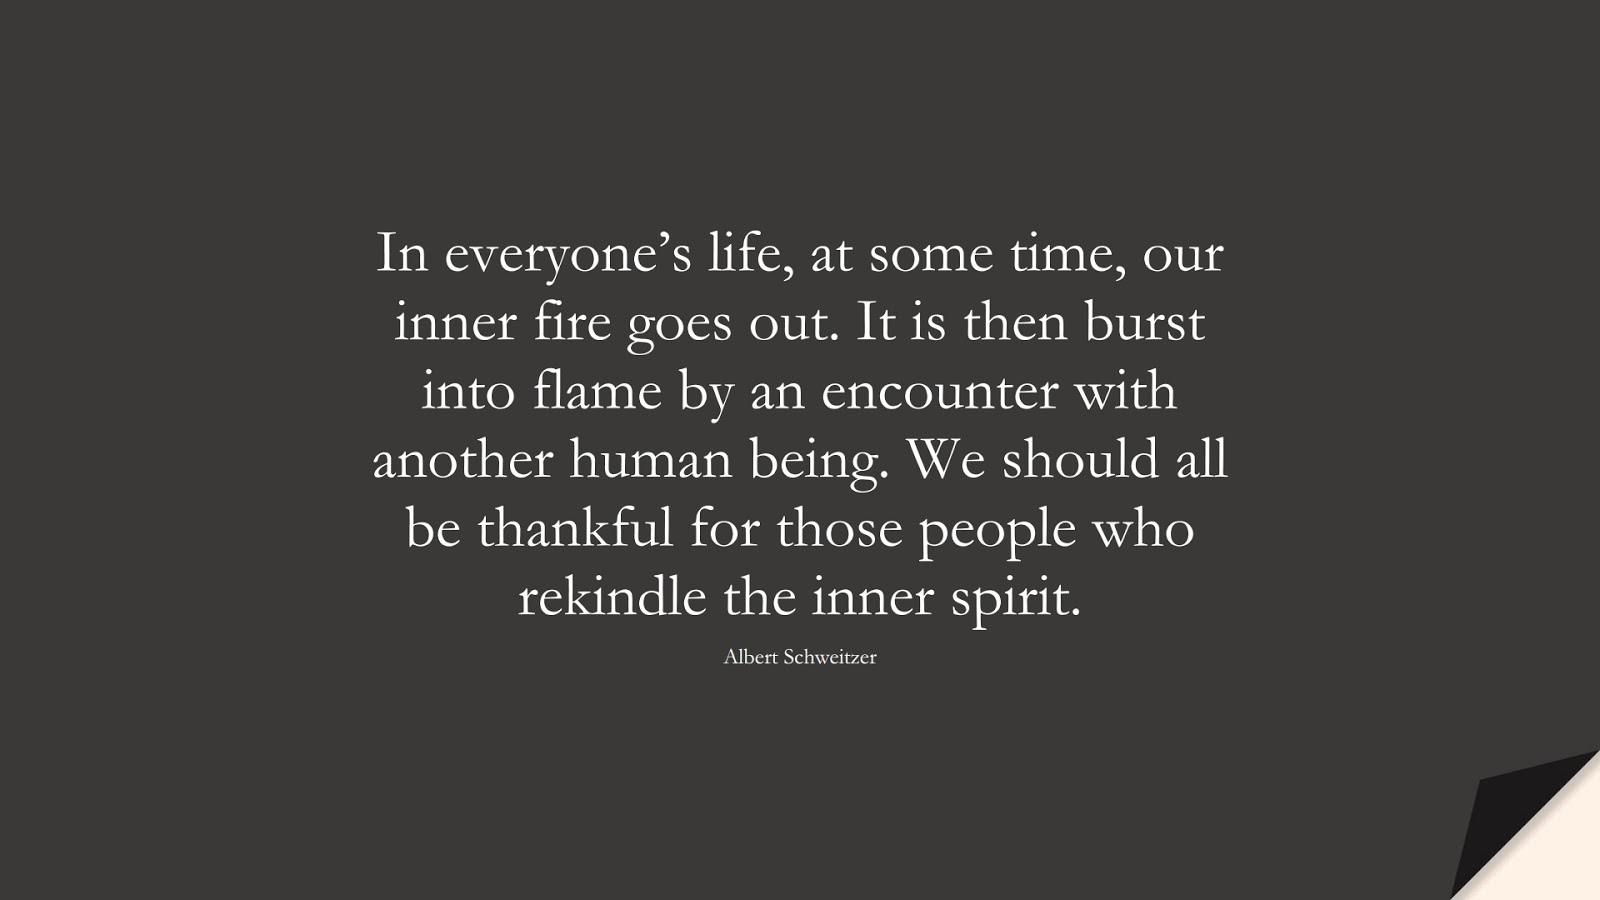 In everyone's life, at some time, our inner fire goes out. It is then burst into flame by an encounter with another human being. We should all be thankful for those people who rekindle the inner spirit. (Albert Schweitzer);  #LoveQuotes